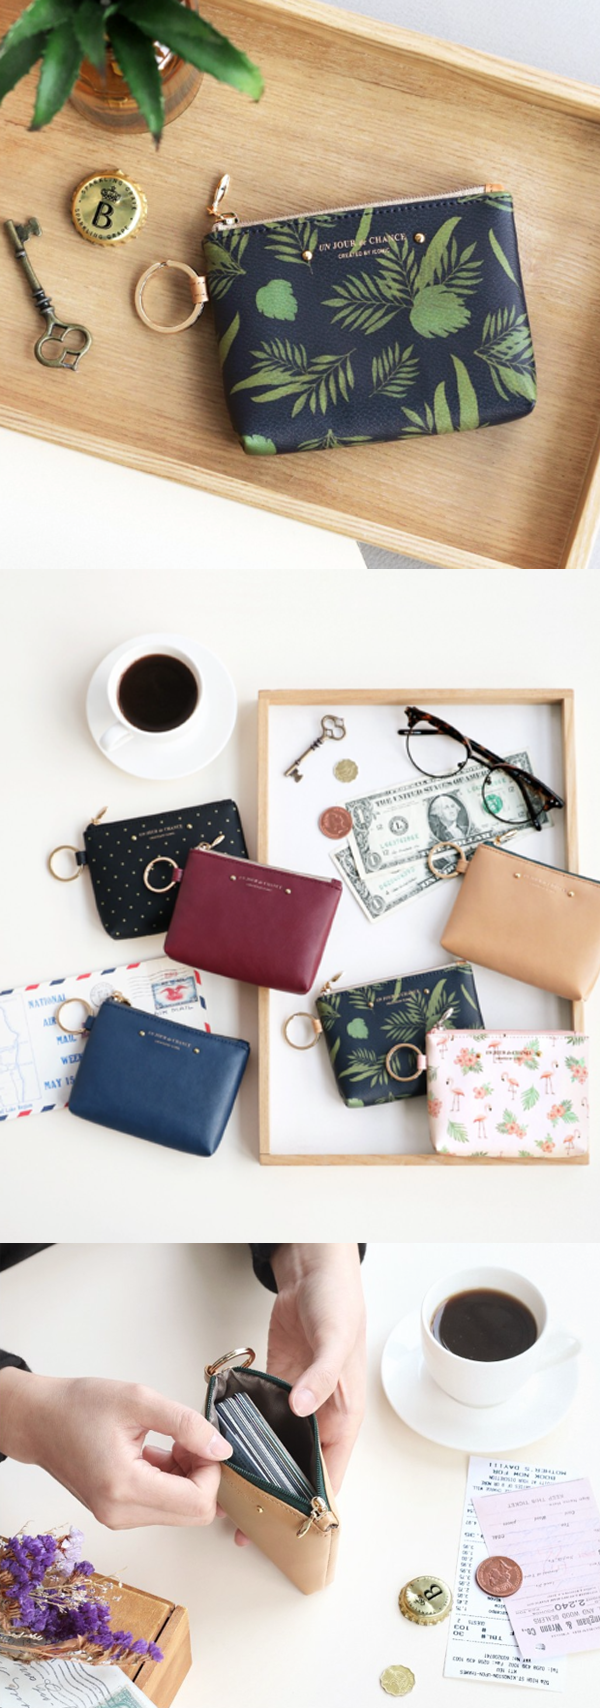 The Pochette Coin Wallet is all I need when I am leaving the house! I can carry my cards, bills, coins inside the compartment plus my keys by attaching them to the key ring. This way I can leave the house more lightly and conveniently!